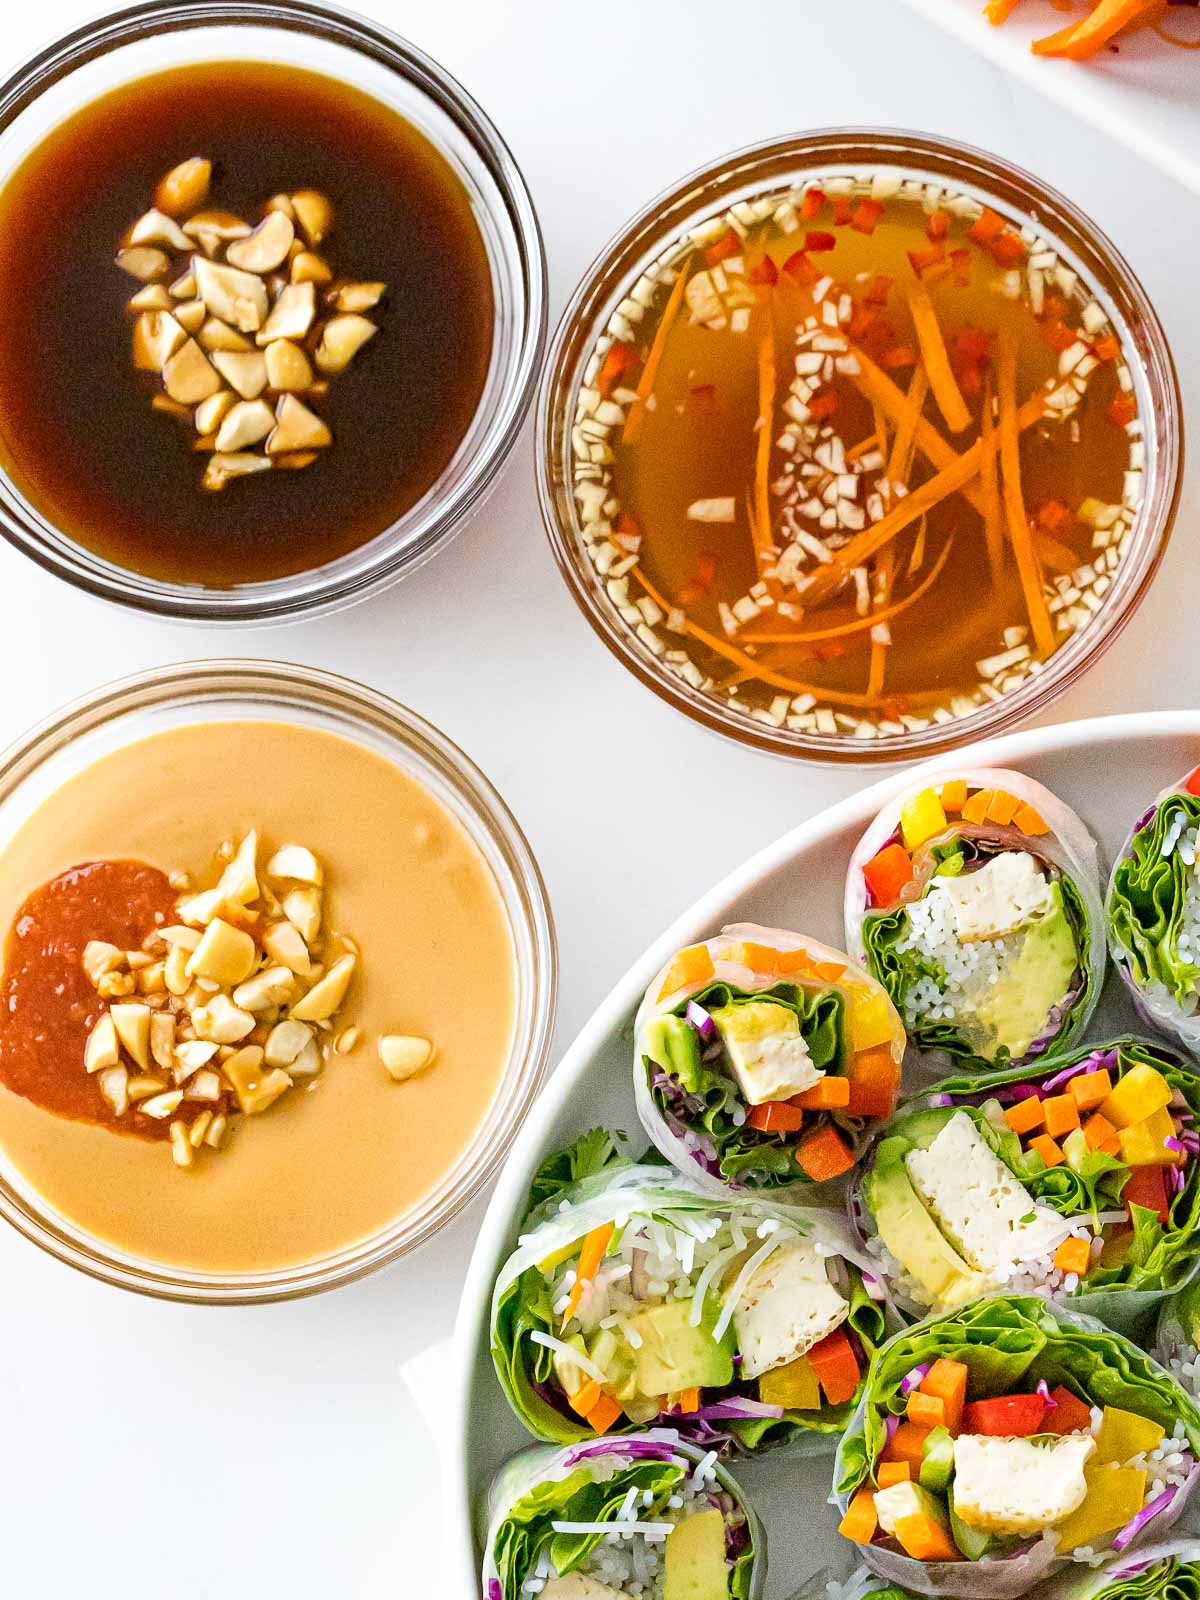 spring roll sauces including peanut sauce, hoisin, and fish sauce next to spring rolls